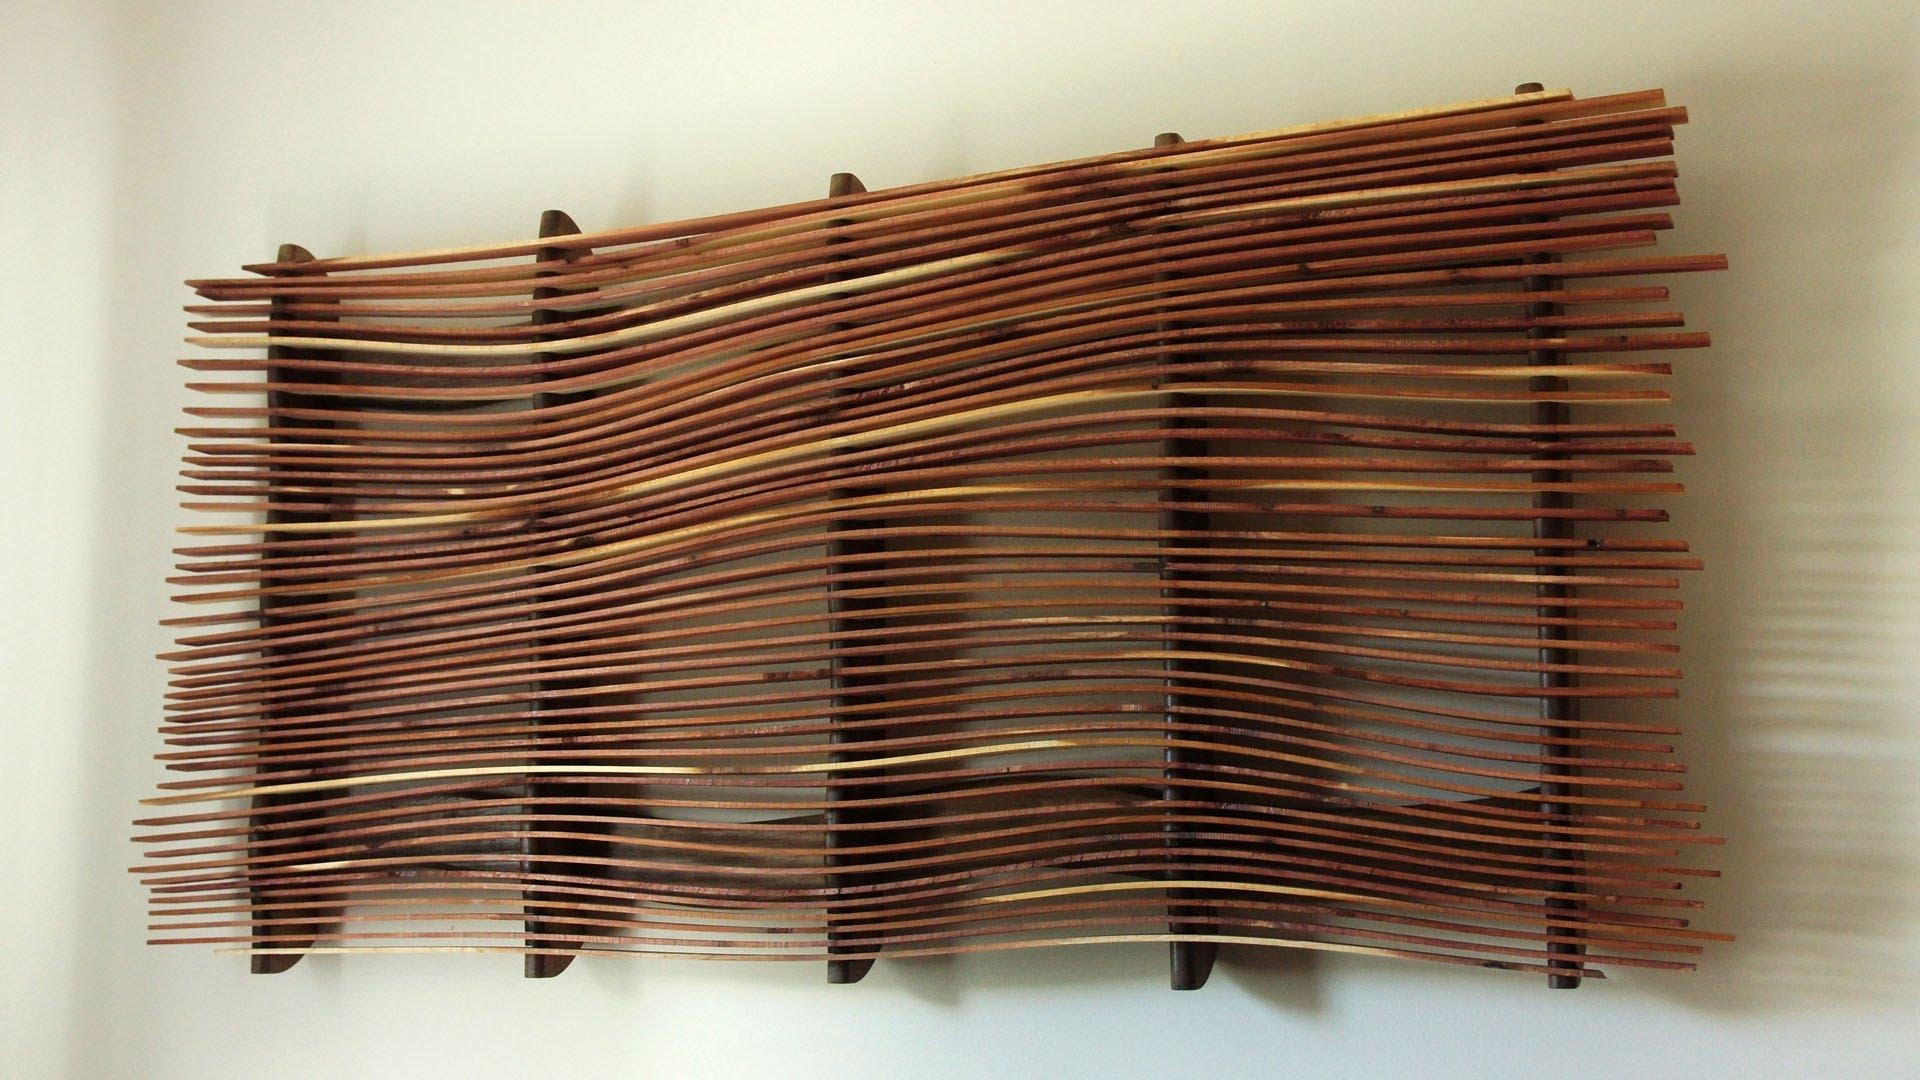 Wall Art From Scrap Wood – Youtube Regarding Wall Art On Wood (Image 13 of 20)